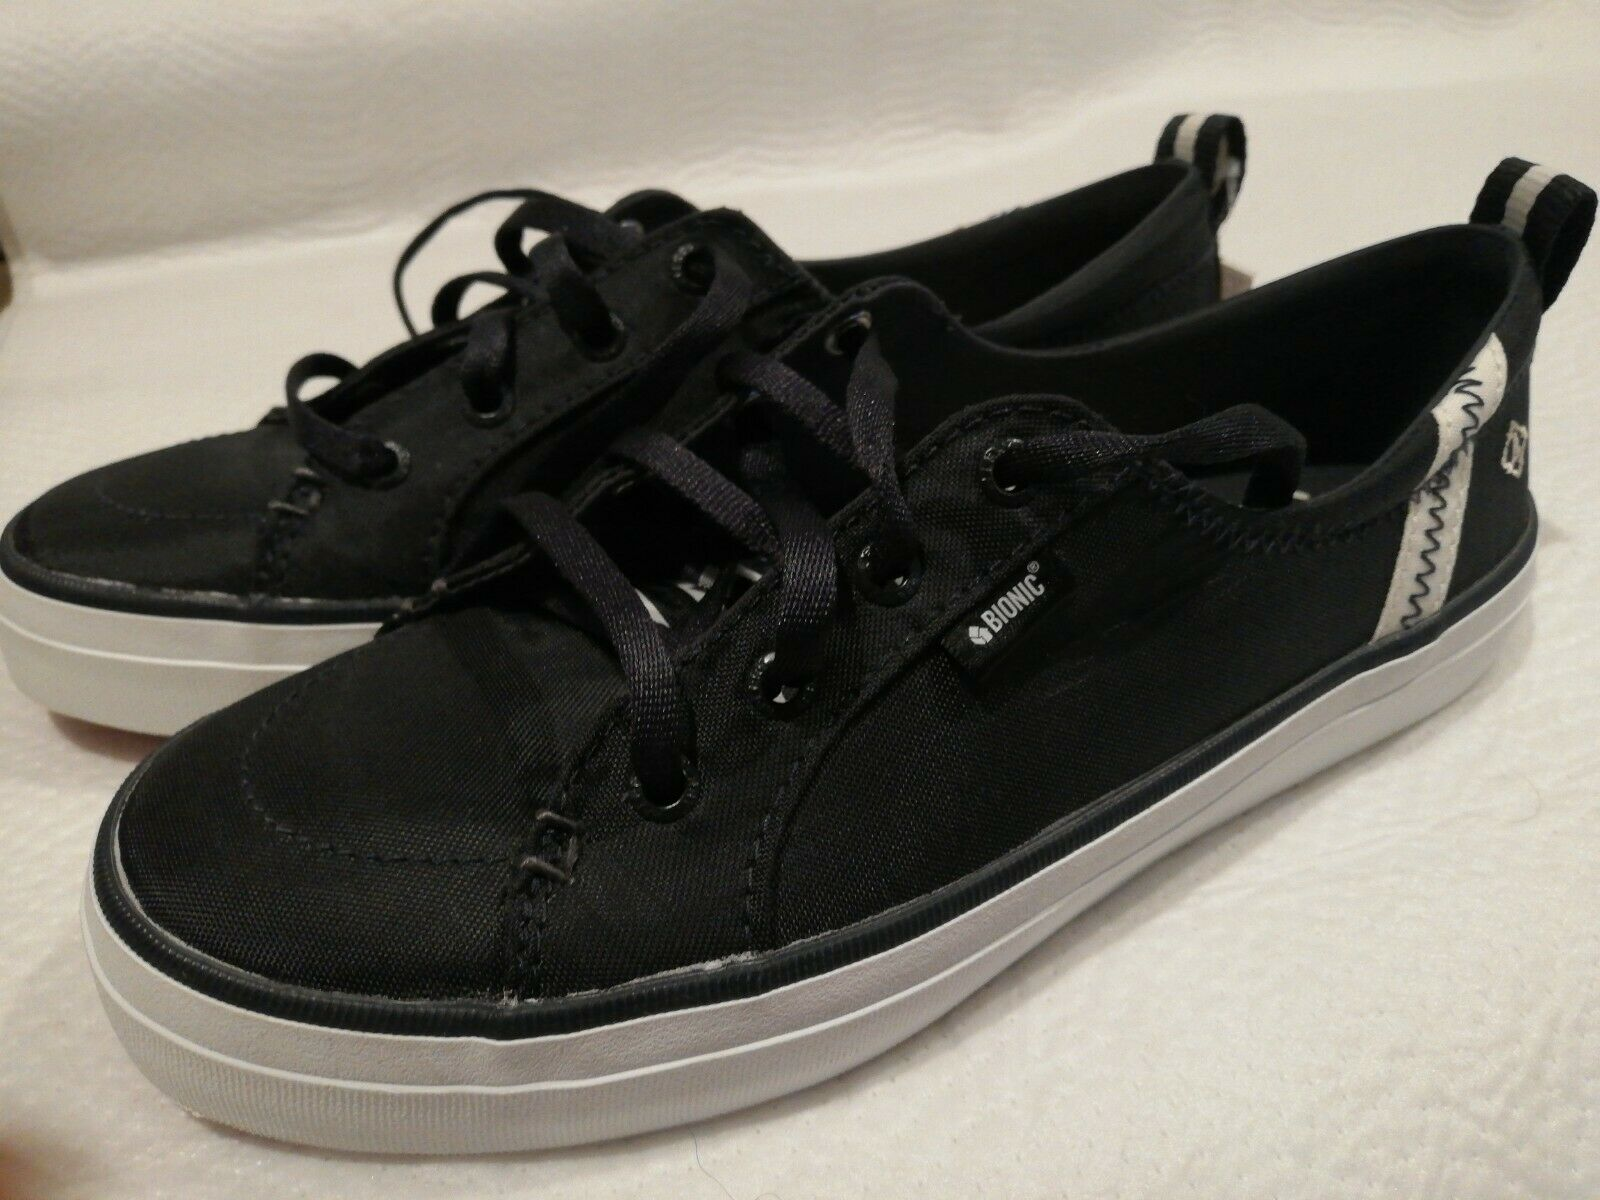 New Sperry Top-Sider Women's Crest Vibe Bionic Sneaker - Size 7